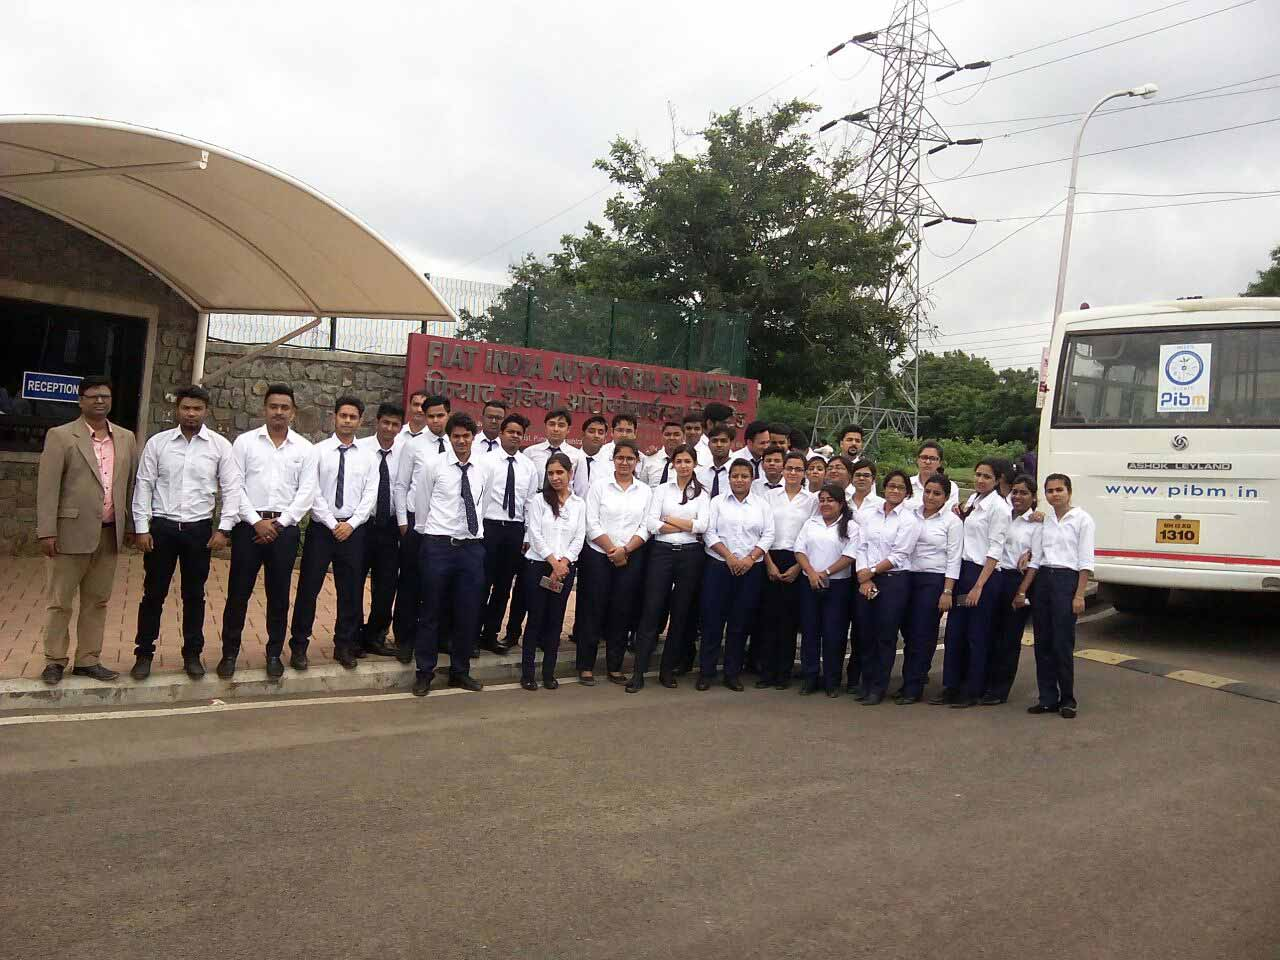 Industry visit to Fiat_Industry Visit_PIBM Pune